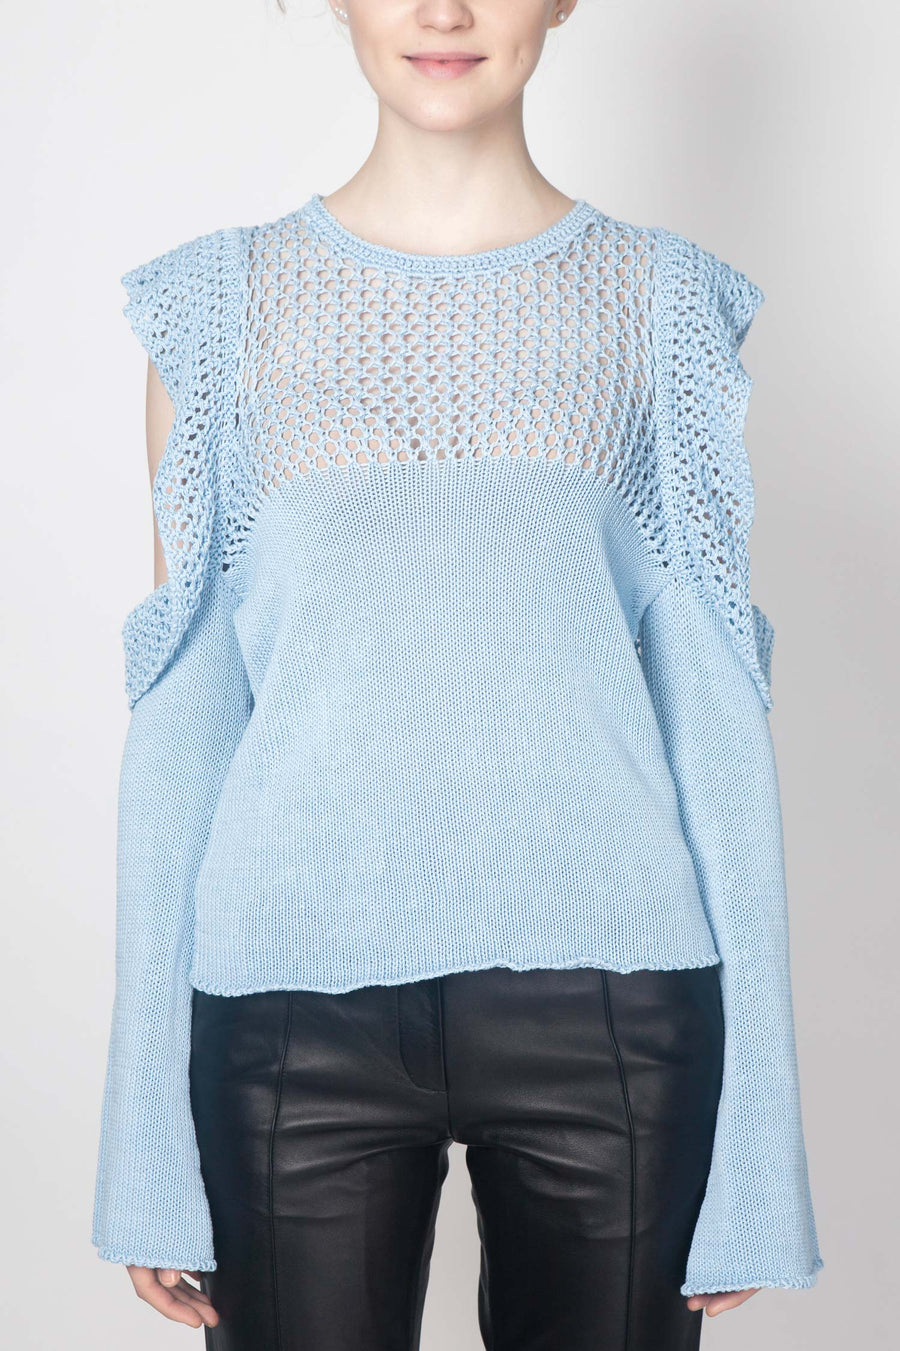 Cut-out Sweater with Elongated Sleeves